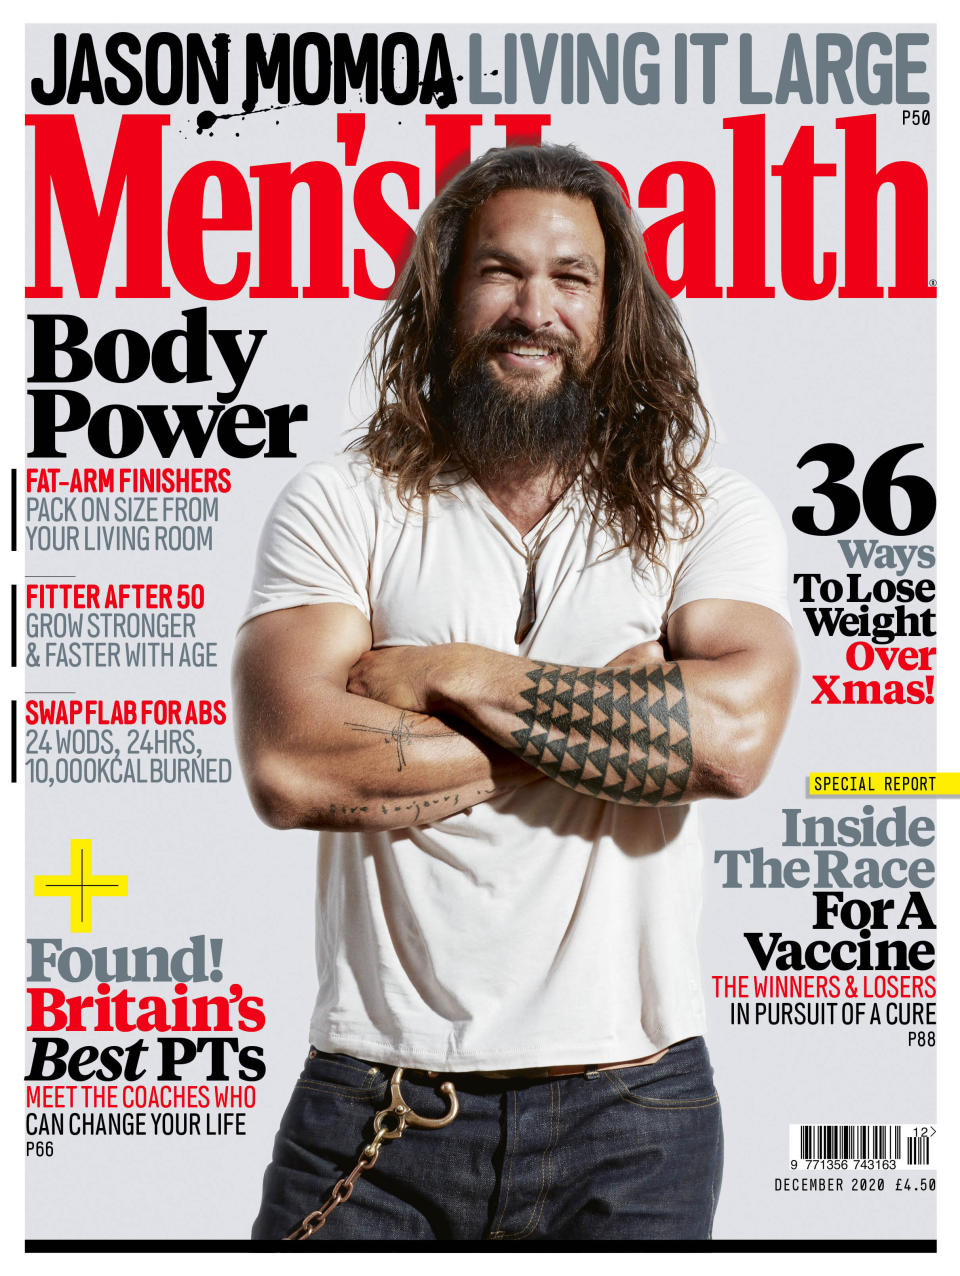 Men's Health cover (Men's Health/Ture Lillegraven/PA)